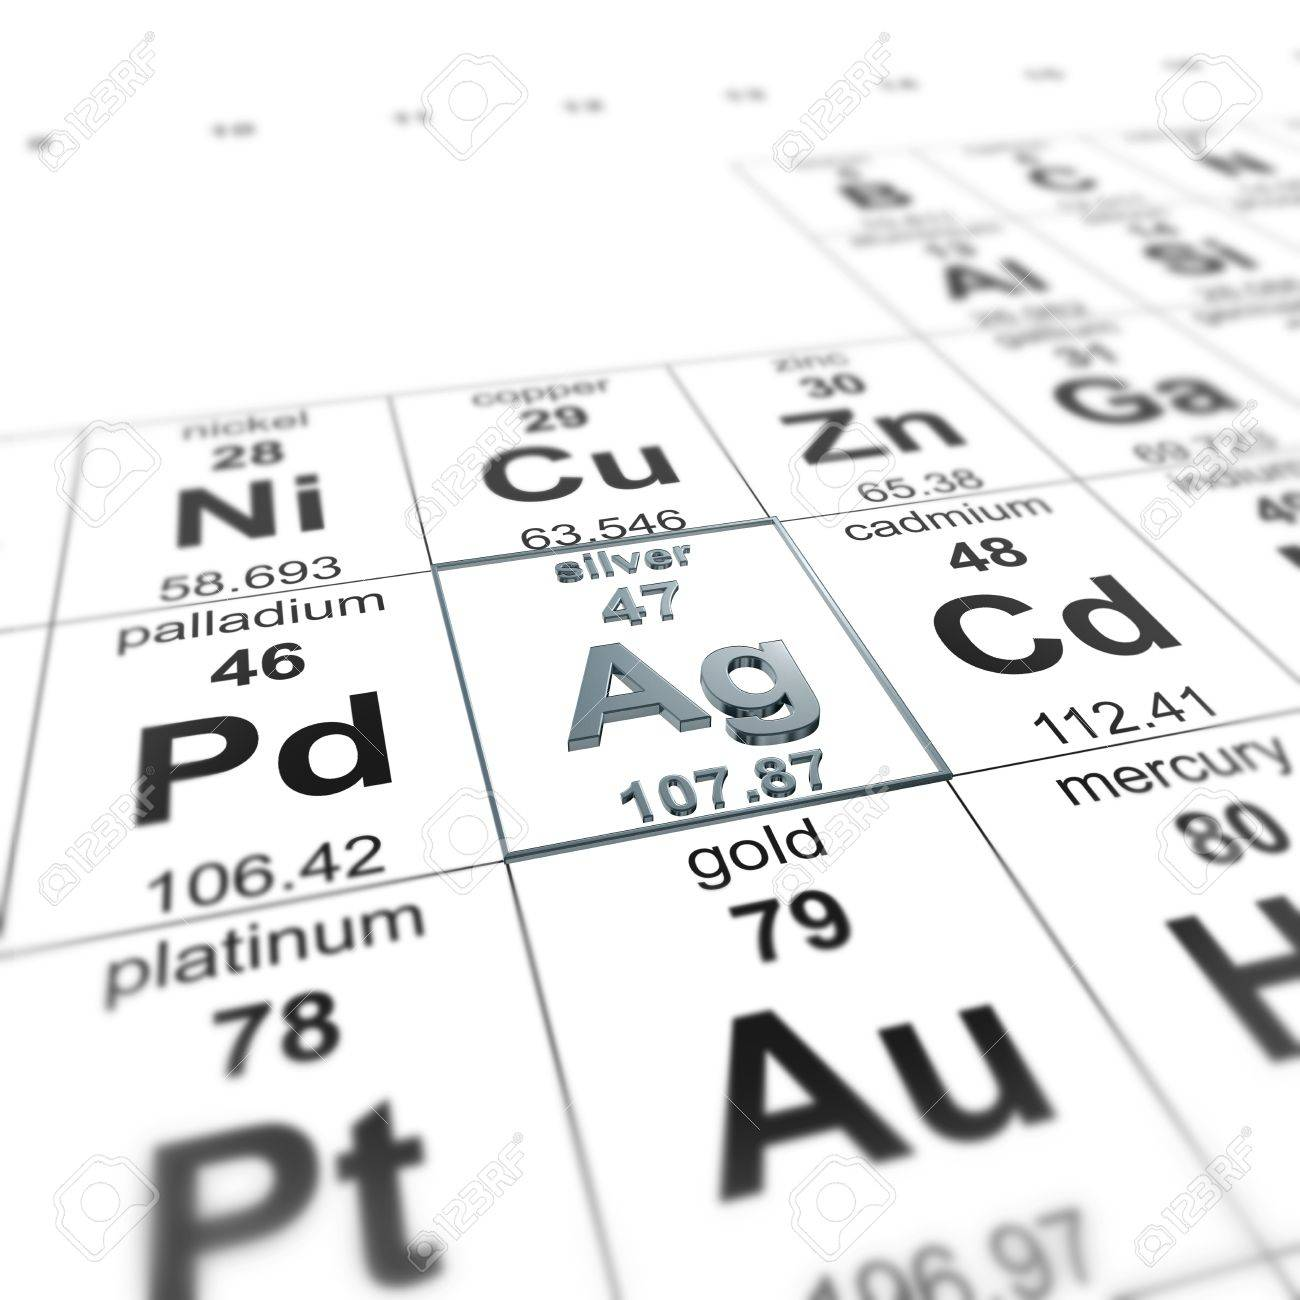 Periodic table of elements focused on silver stock photo picture periodic table of elements focused on silver stock photo 20109194 urtaz Gallery